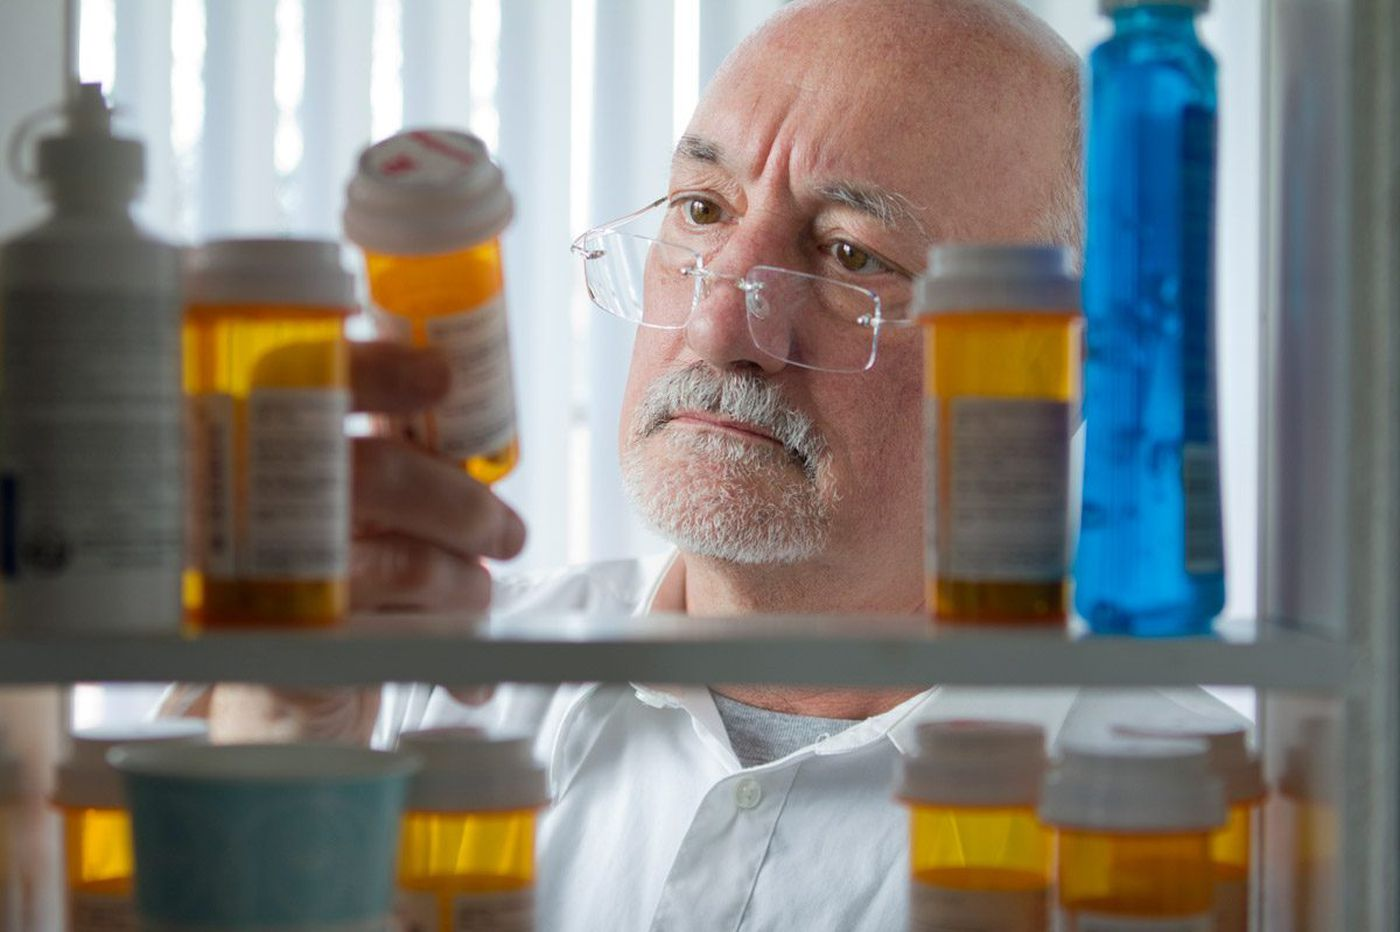 Cleaning out your medicine cabinet: How to safely dispose of medications